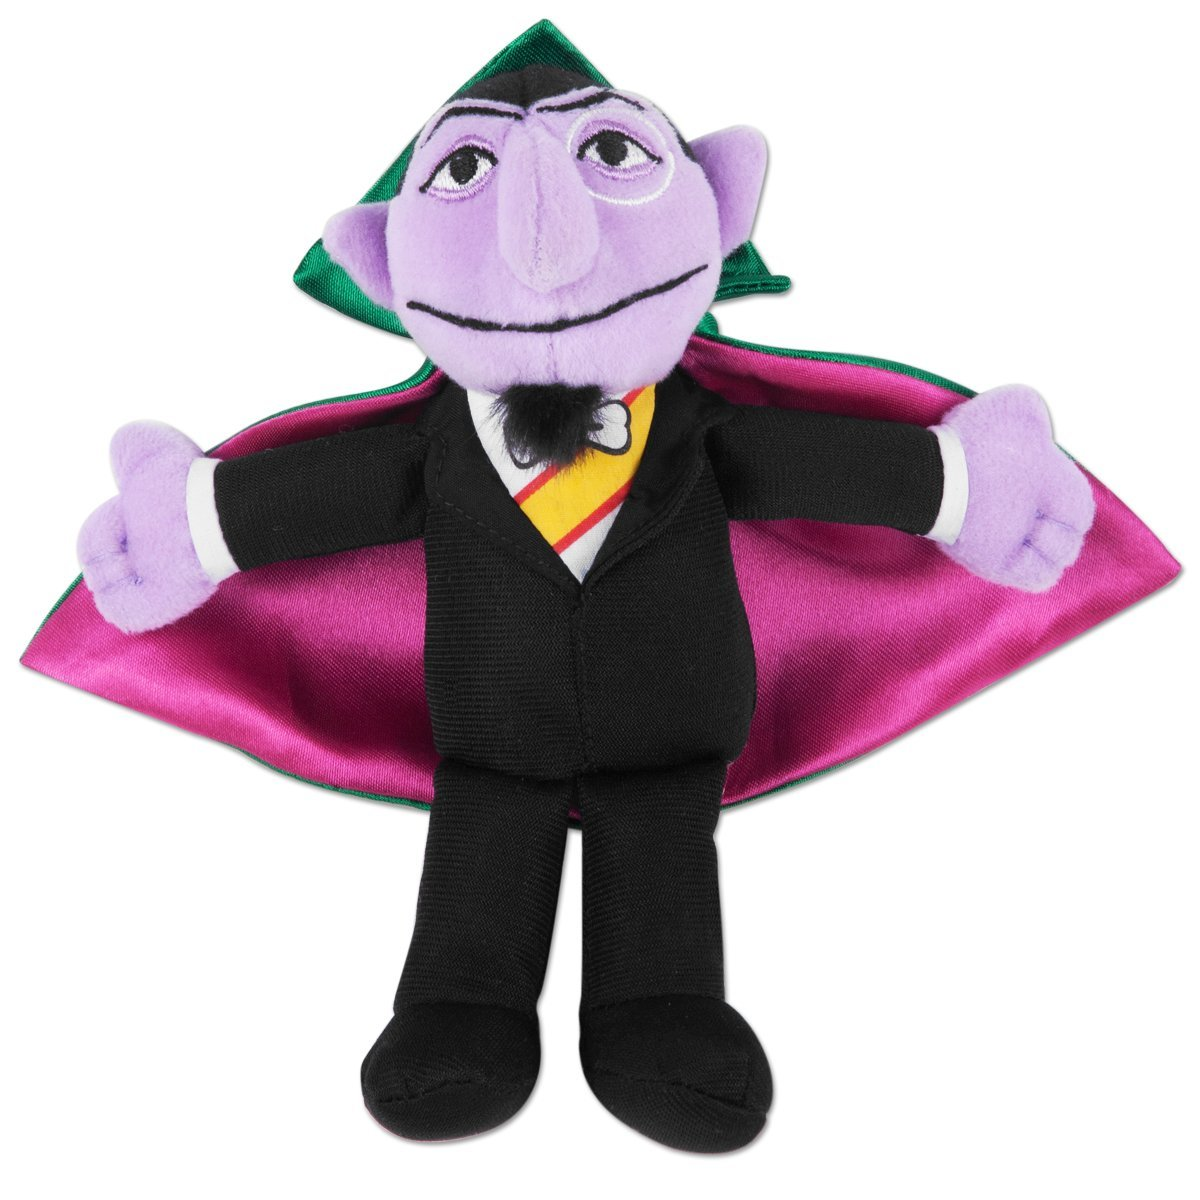 Sesame Street Count Beanbag Stuffed Animal The Count, USA, Brand GUND by